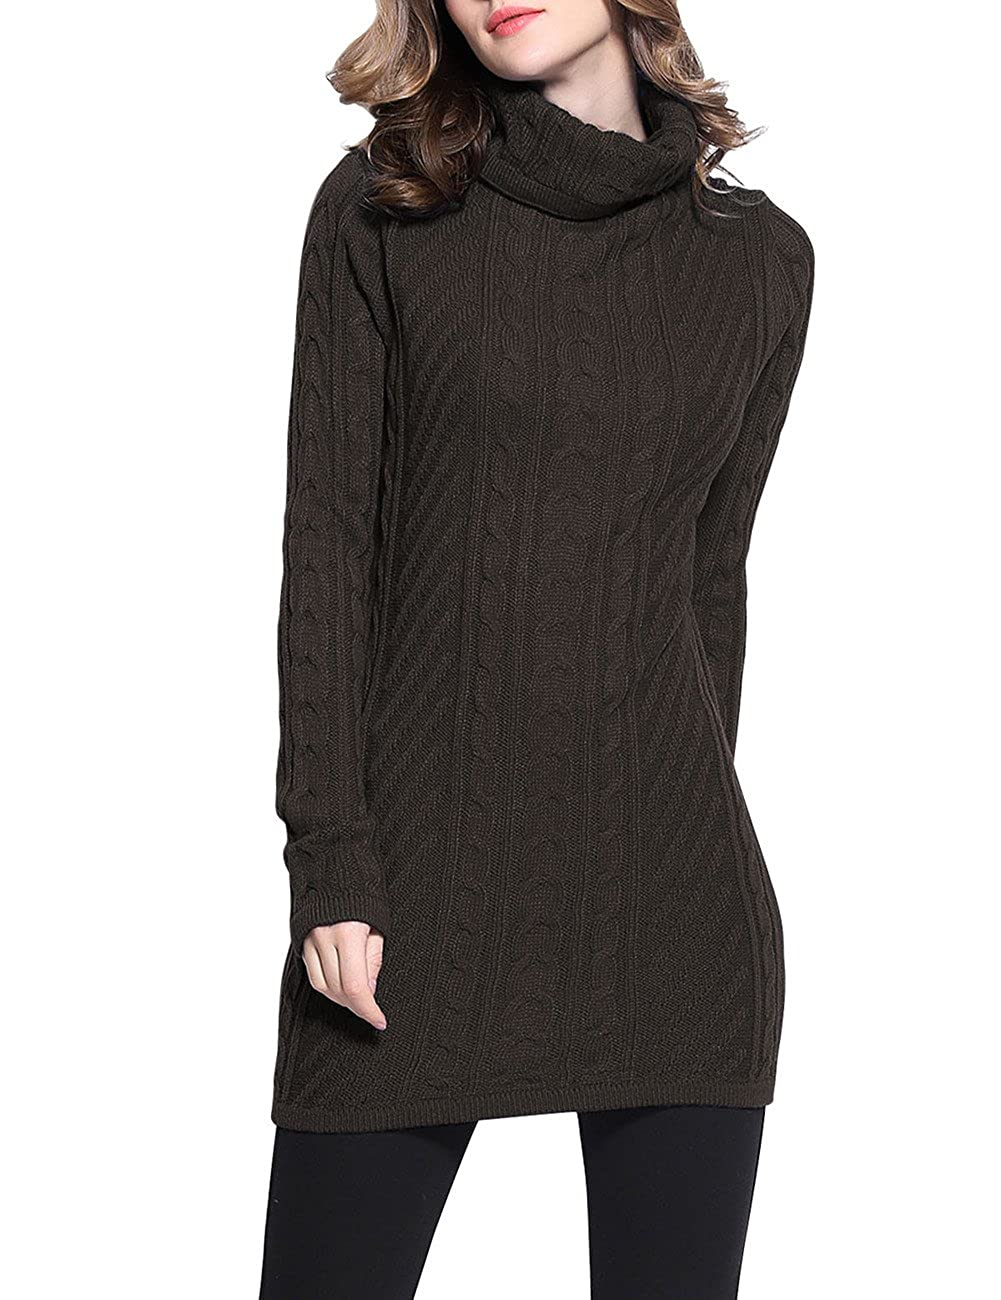 Rocorose Women's Turtleneck Long Sleeves Cable Knit Long Sweater 8018-